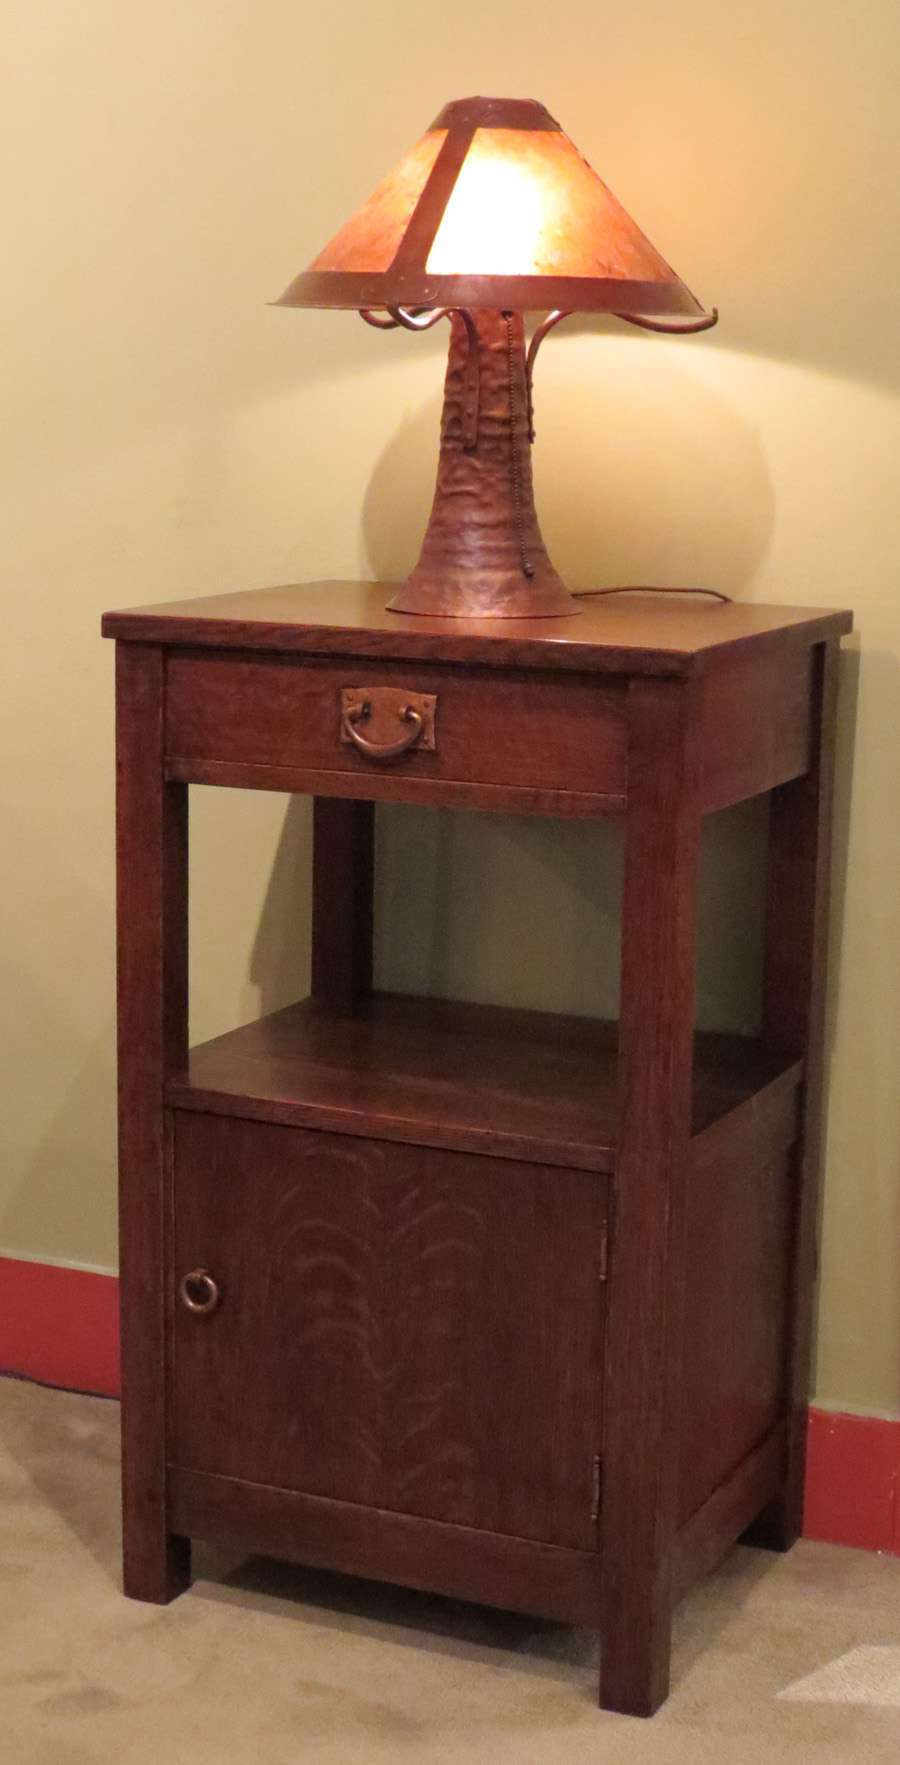 Design An Exhibition Stand : Extremely rare gustav stickley tall nightstand